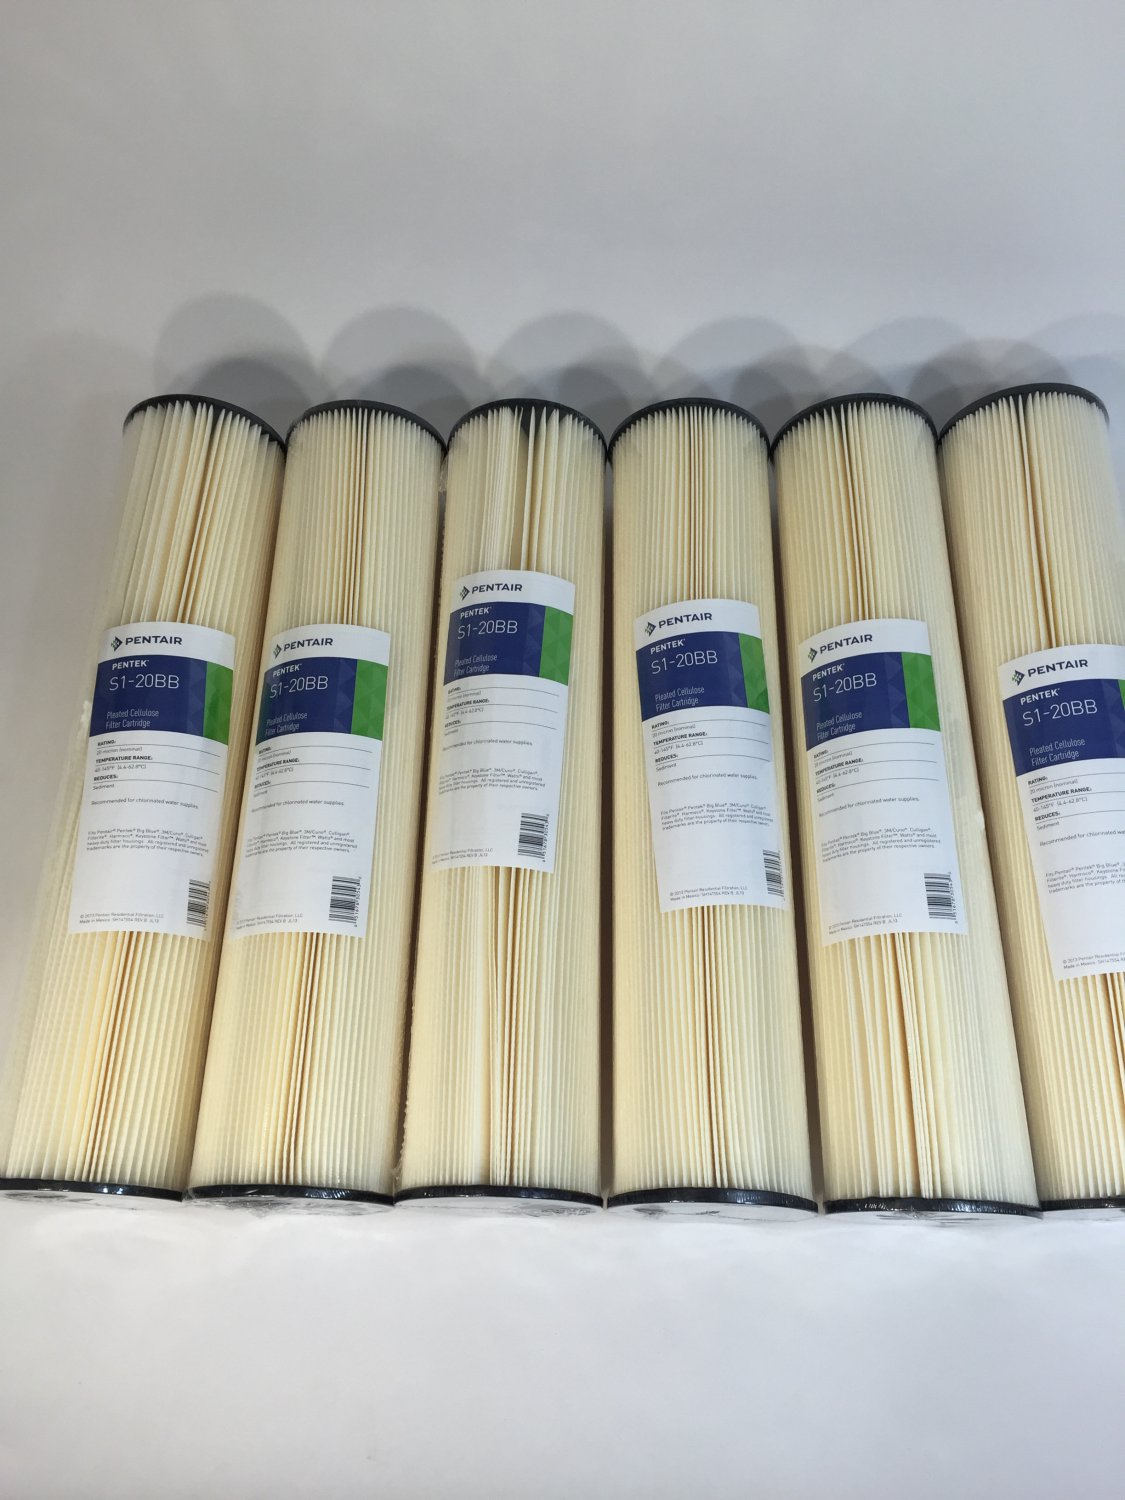 "6 pk Pentek S1-20BB Pleated Cellulose Sediment Water Filter Cartridge 20 Micron 20""x4-1/2"" 155305-43"